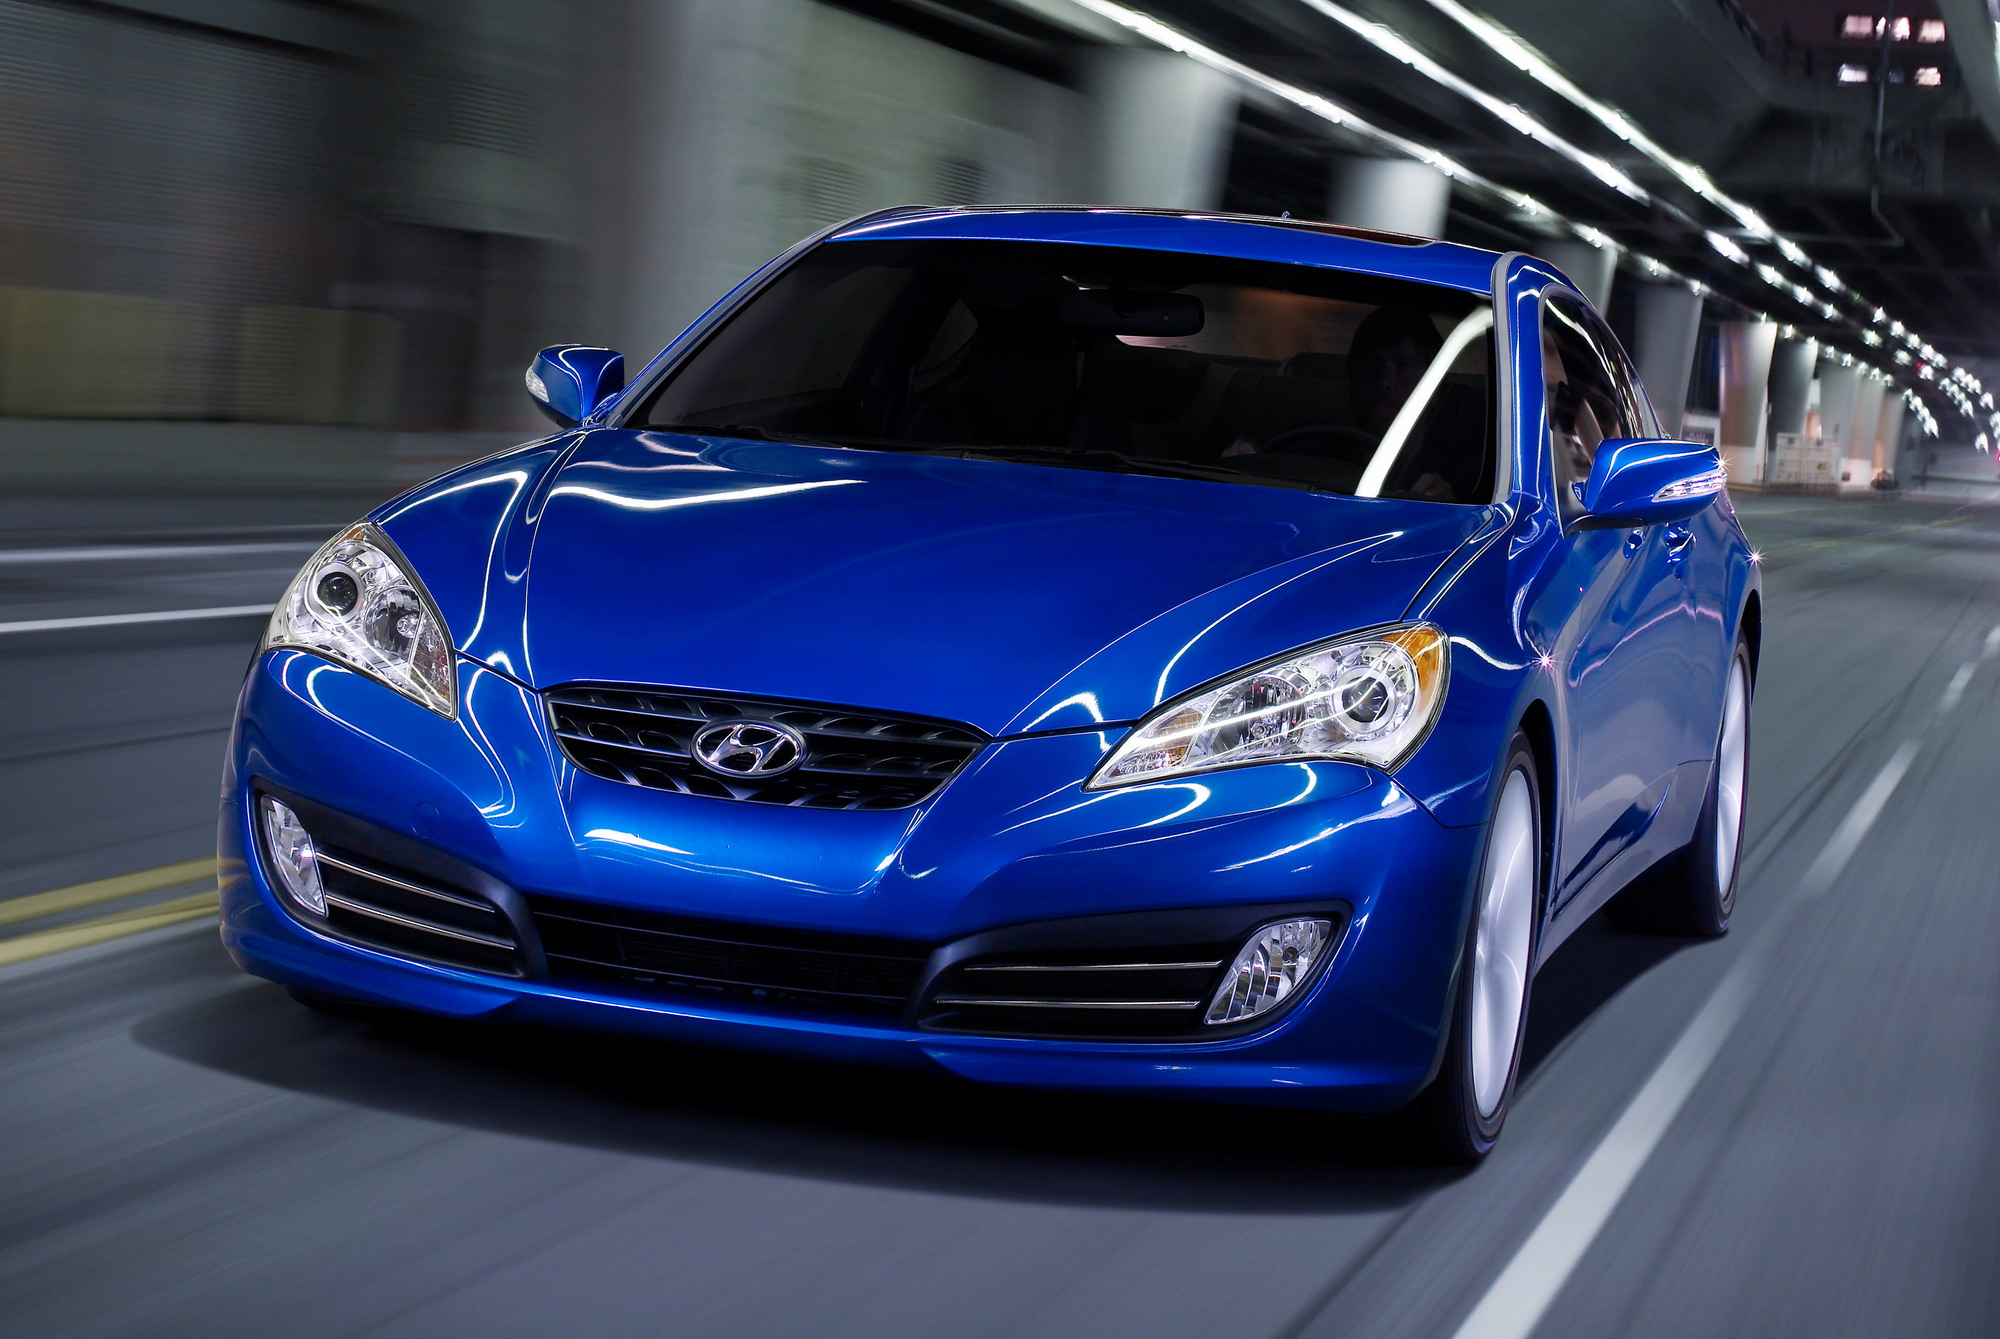 2012 Hyundai Genesis Coupe Will Get 5 0 Liter Tau Engine And